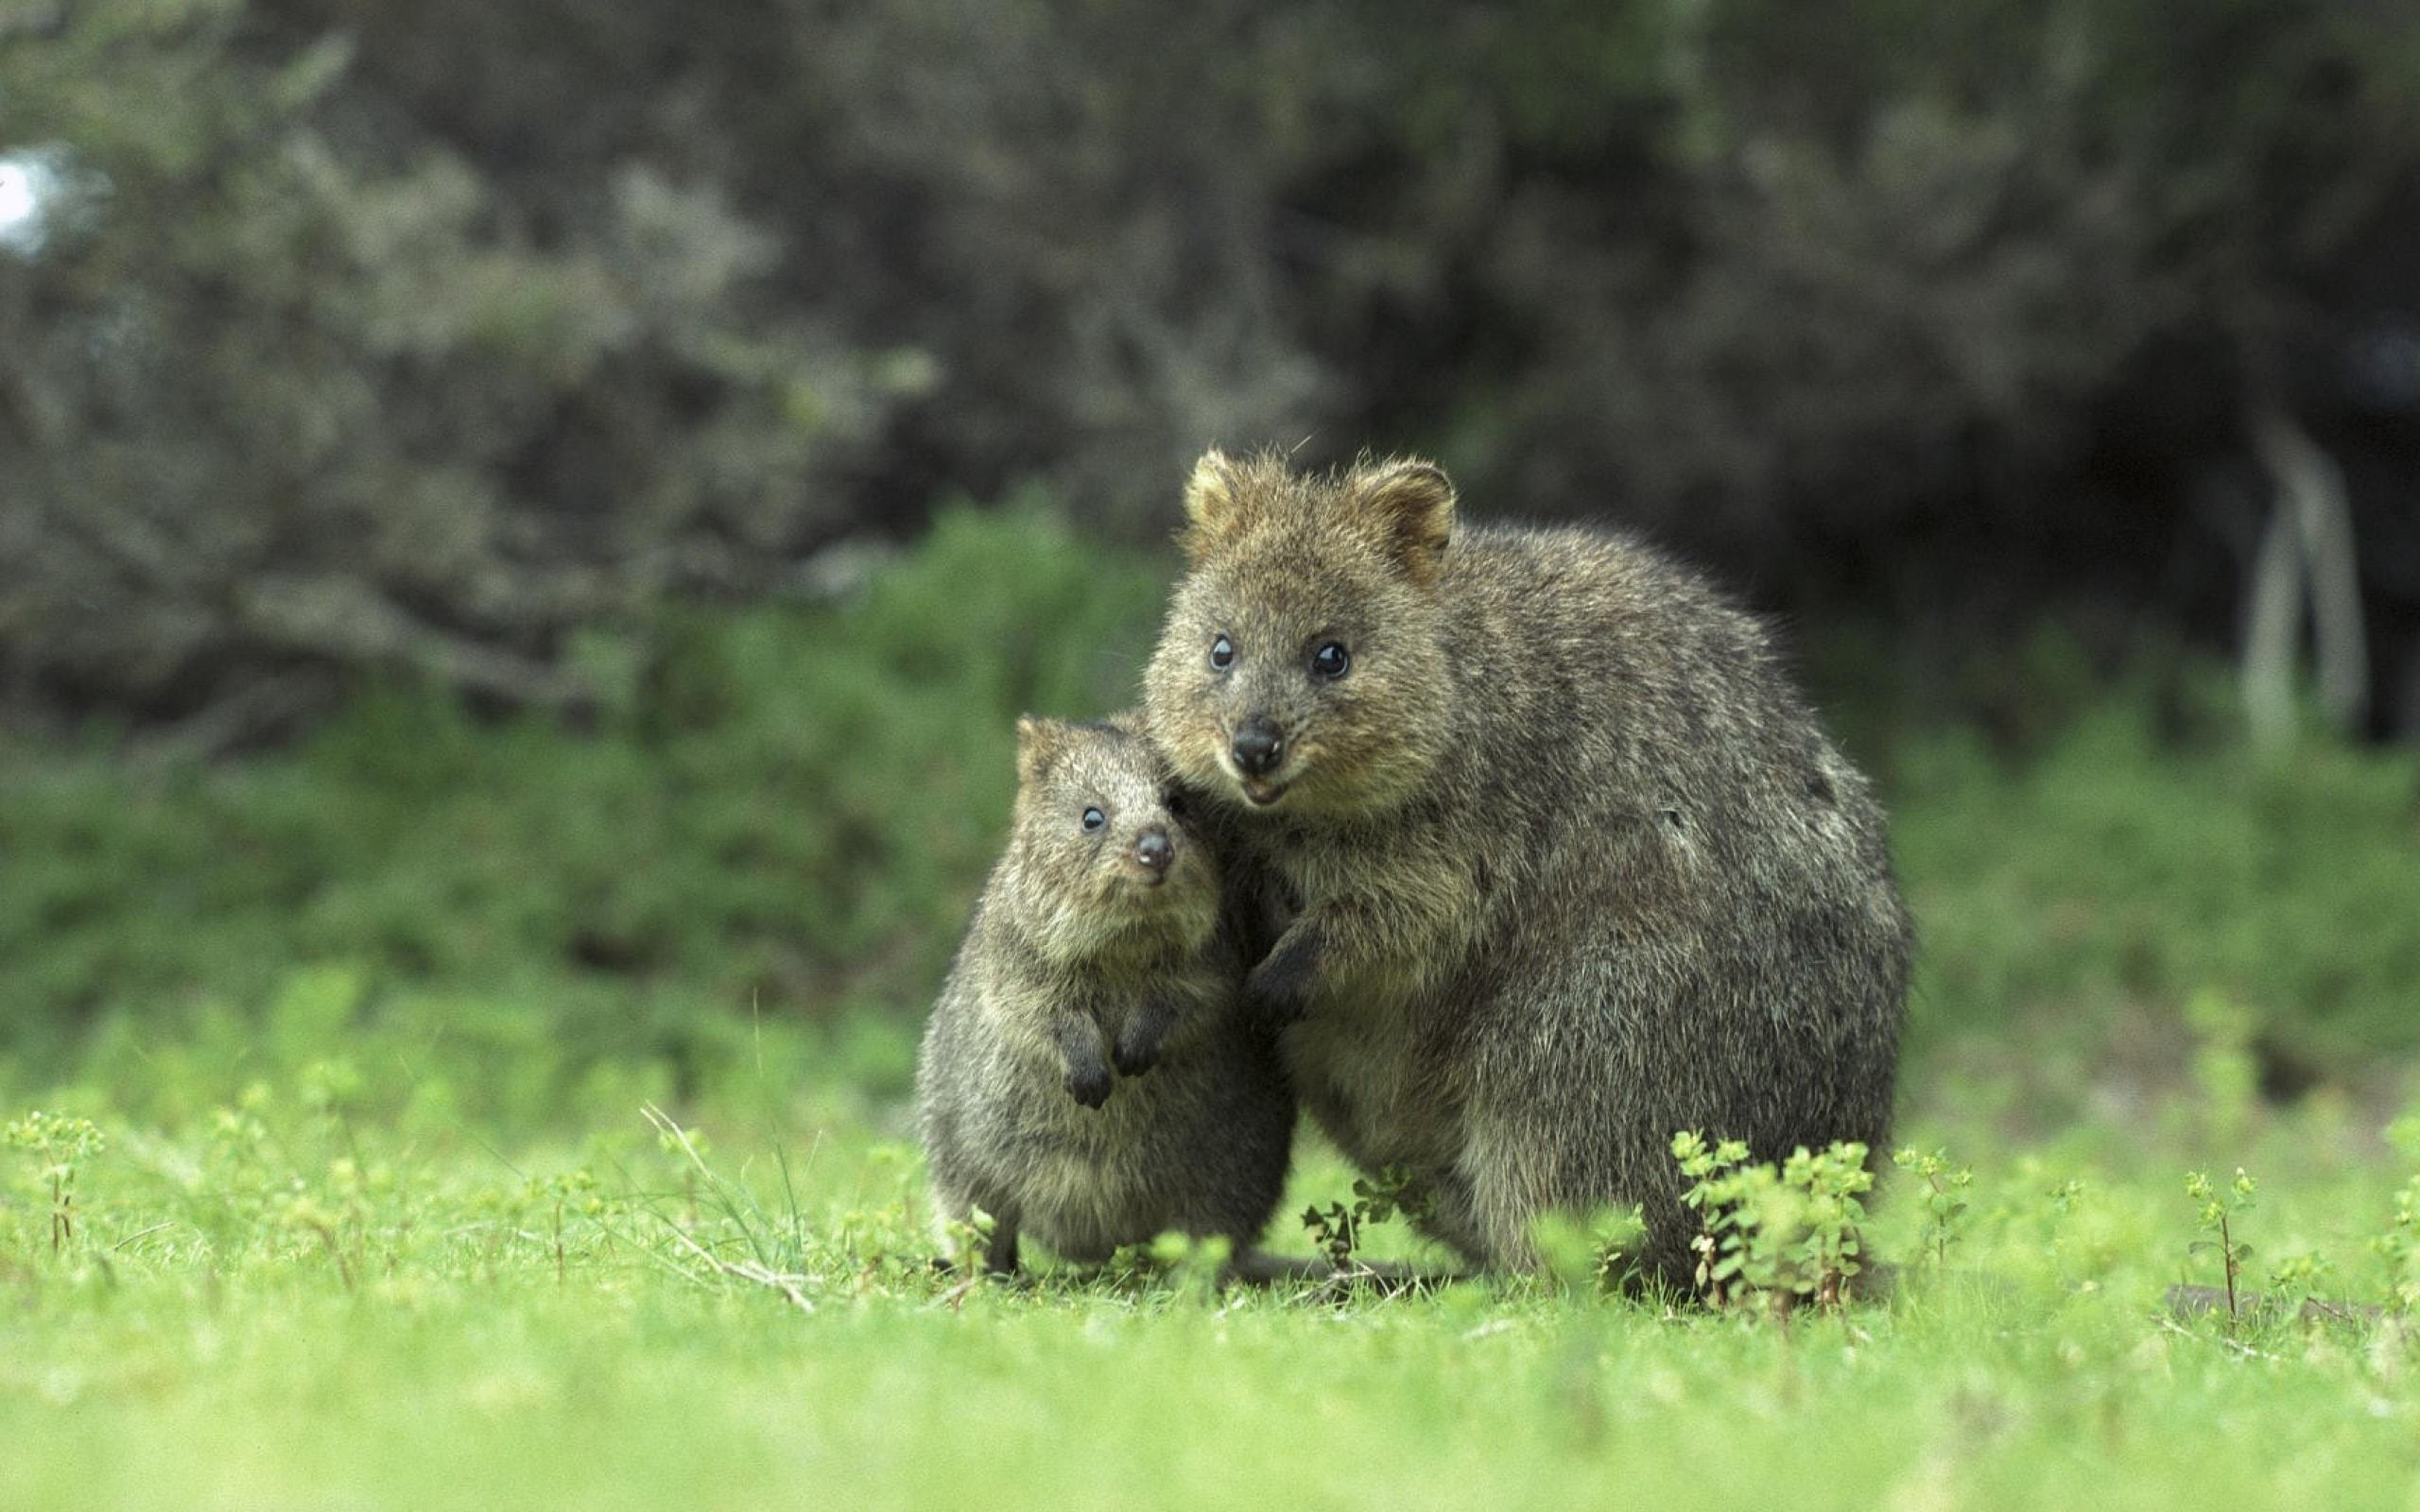 Quokka Computer Wallpaper